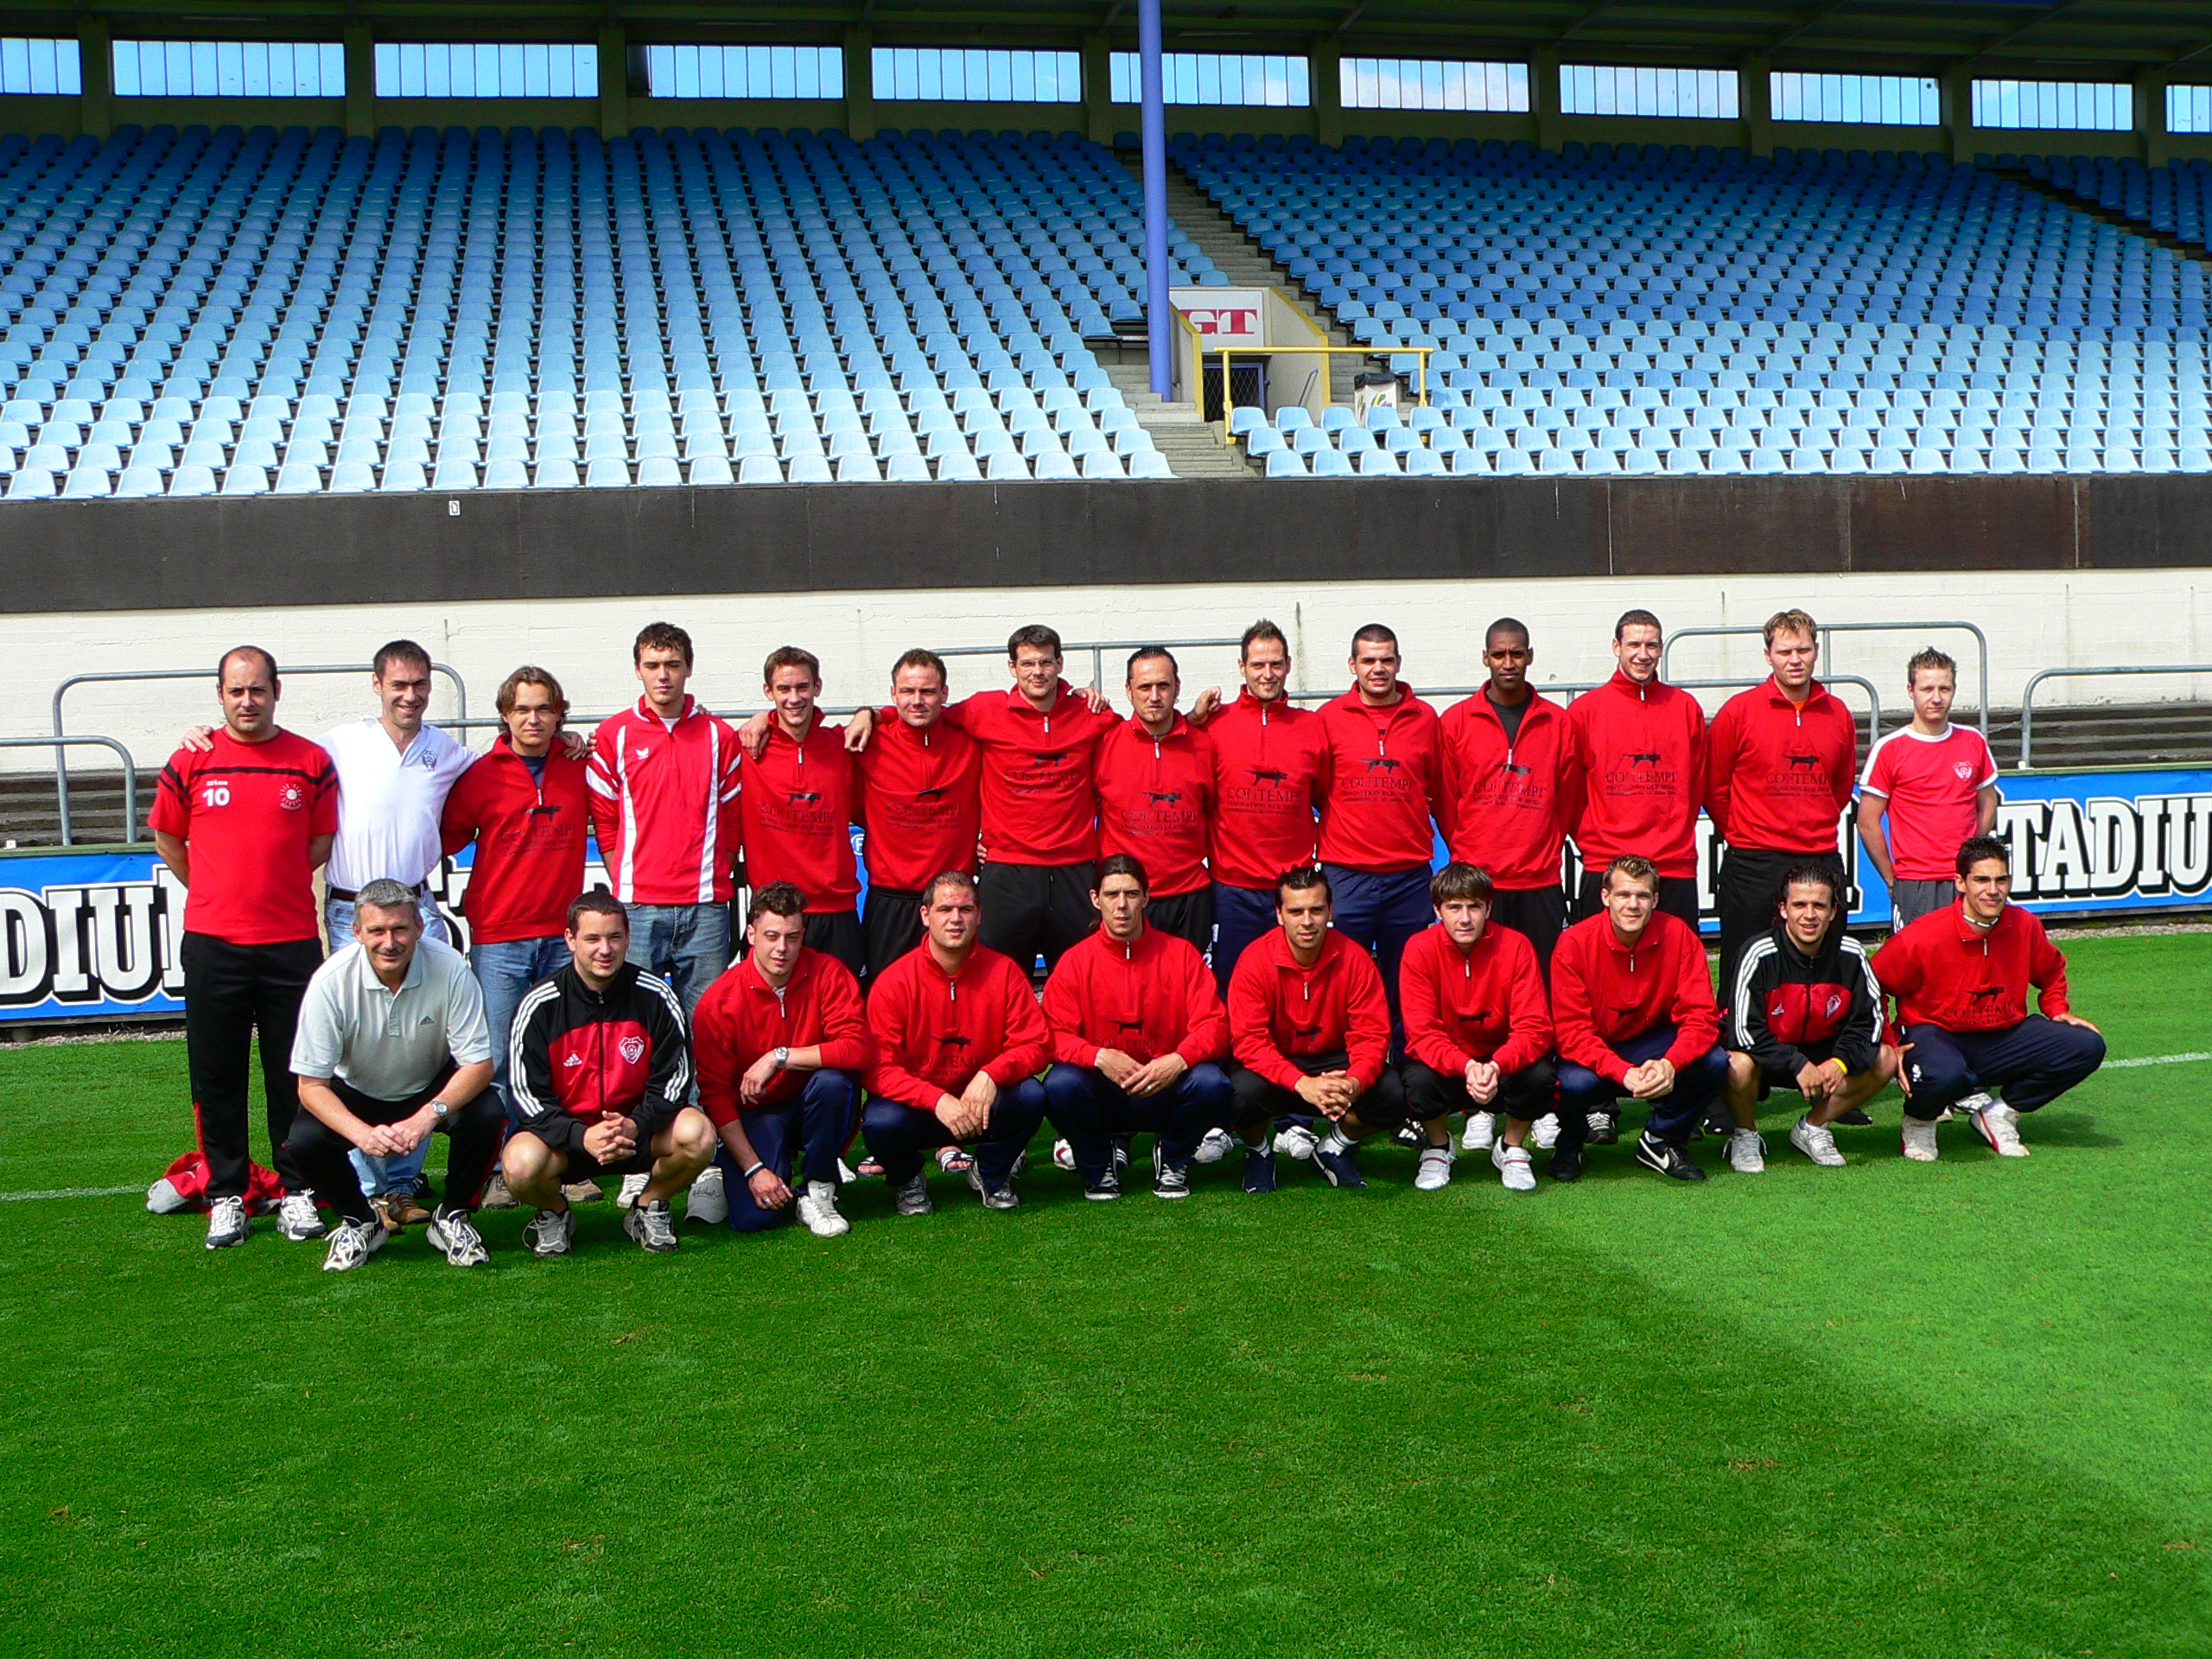 A Swedish football team group portrait on the grass in an empty stadium